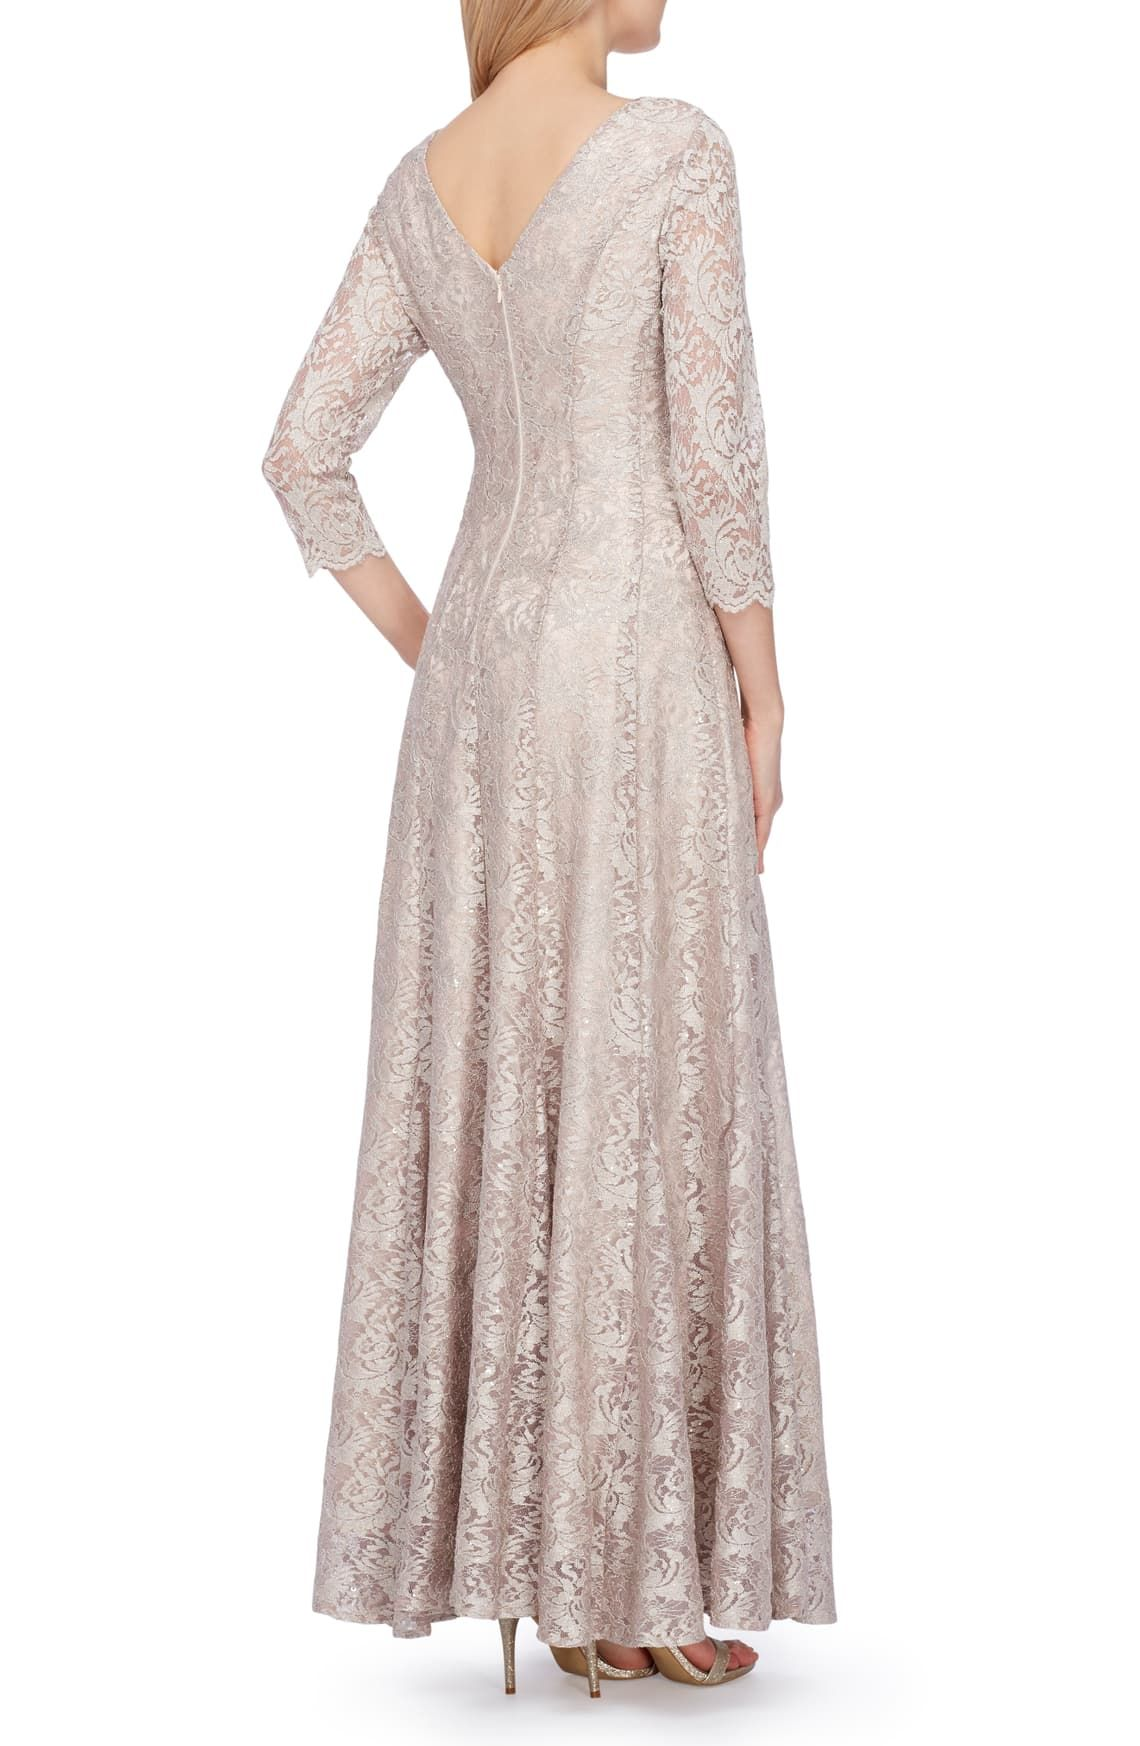 Tahari Embellished Lace Gown Nordstrom Lace Gown Stunning Gowns Gowns [ 1746 x 1140 Pixel ]